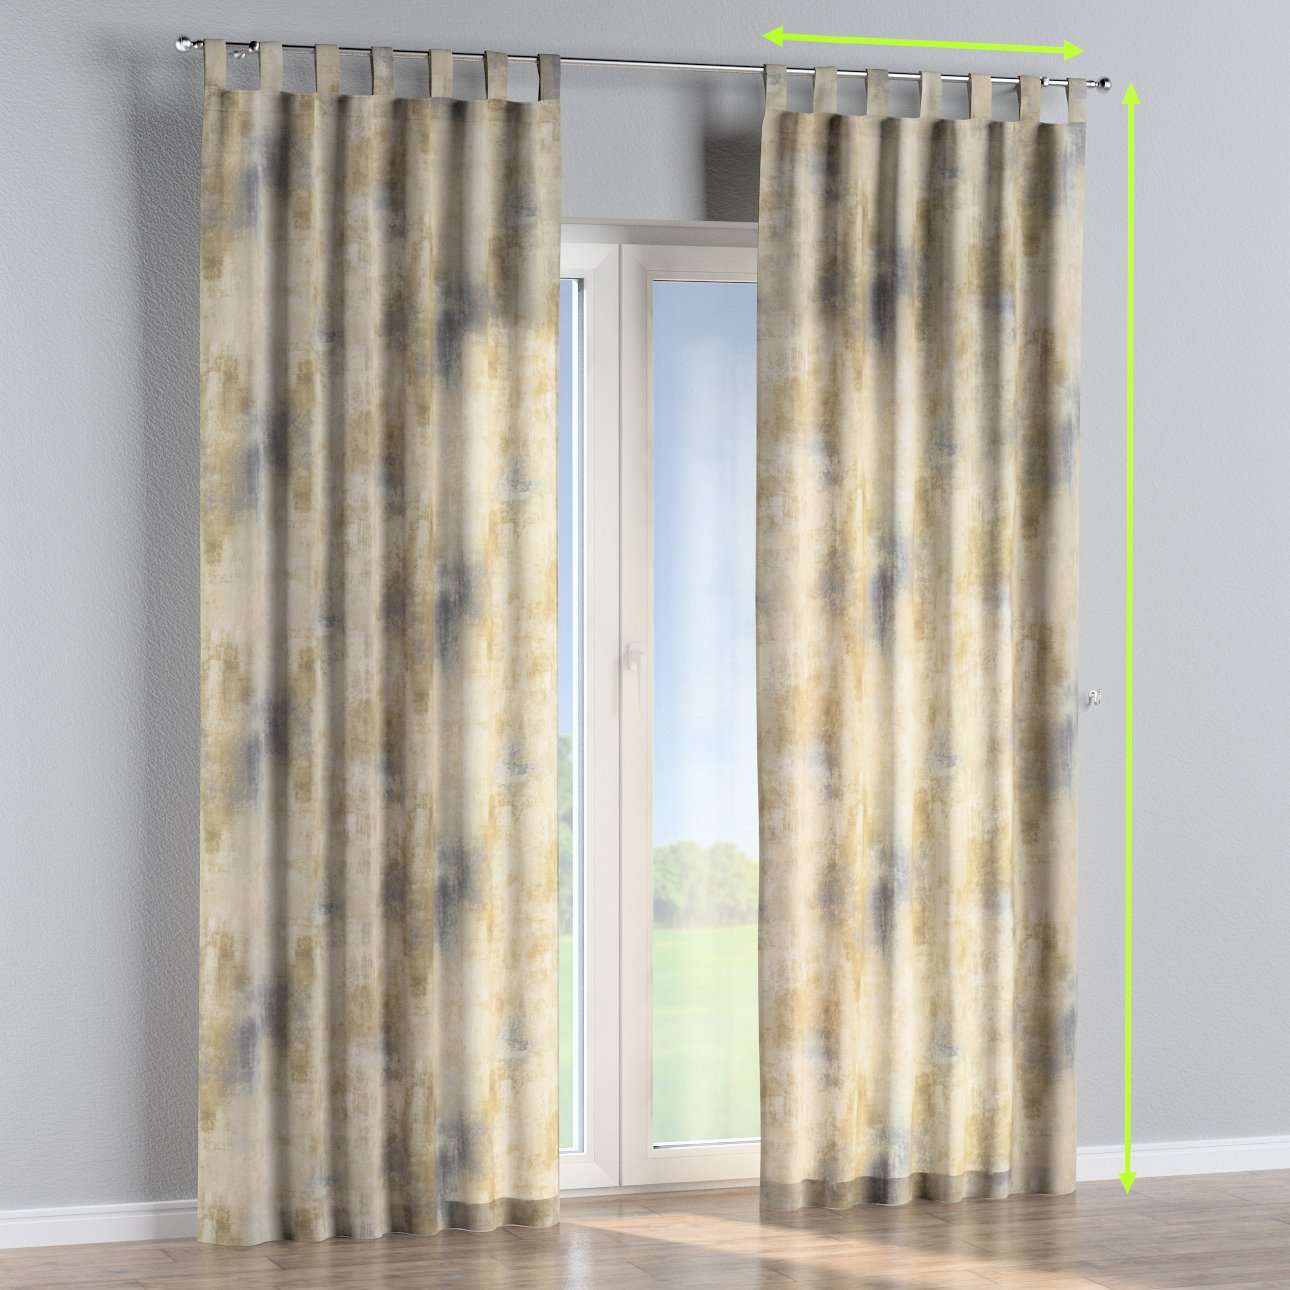 Tab top curtains in collection Urban Jungle, fabric: 141-23